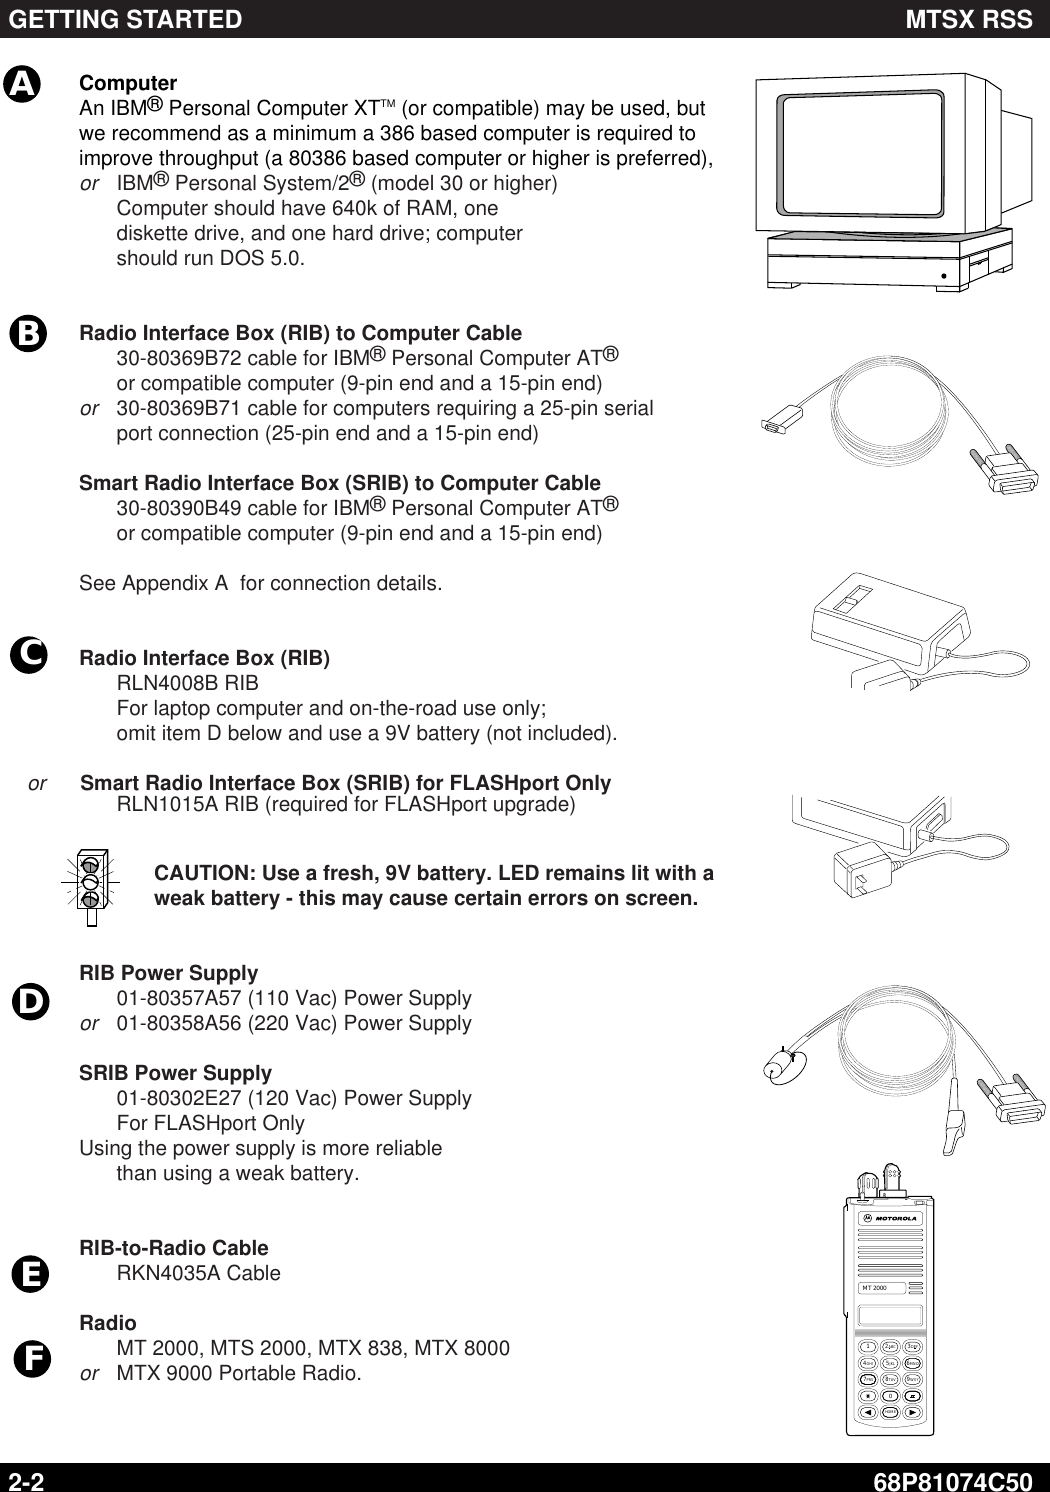 Motorola Two Way Radio Mt2000 Users Manual 74C50 J MT 2000